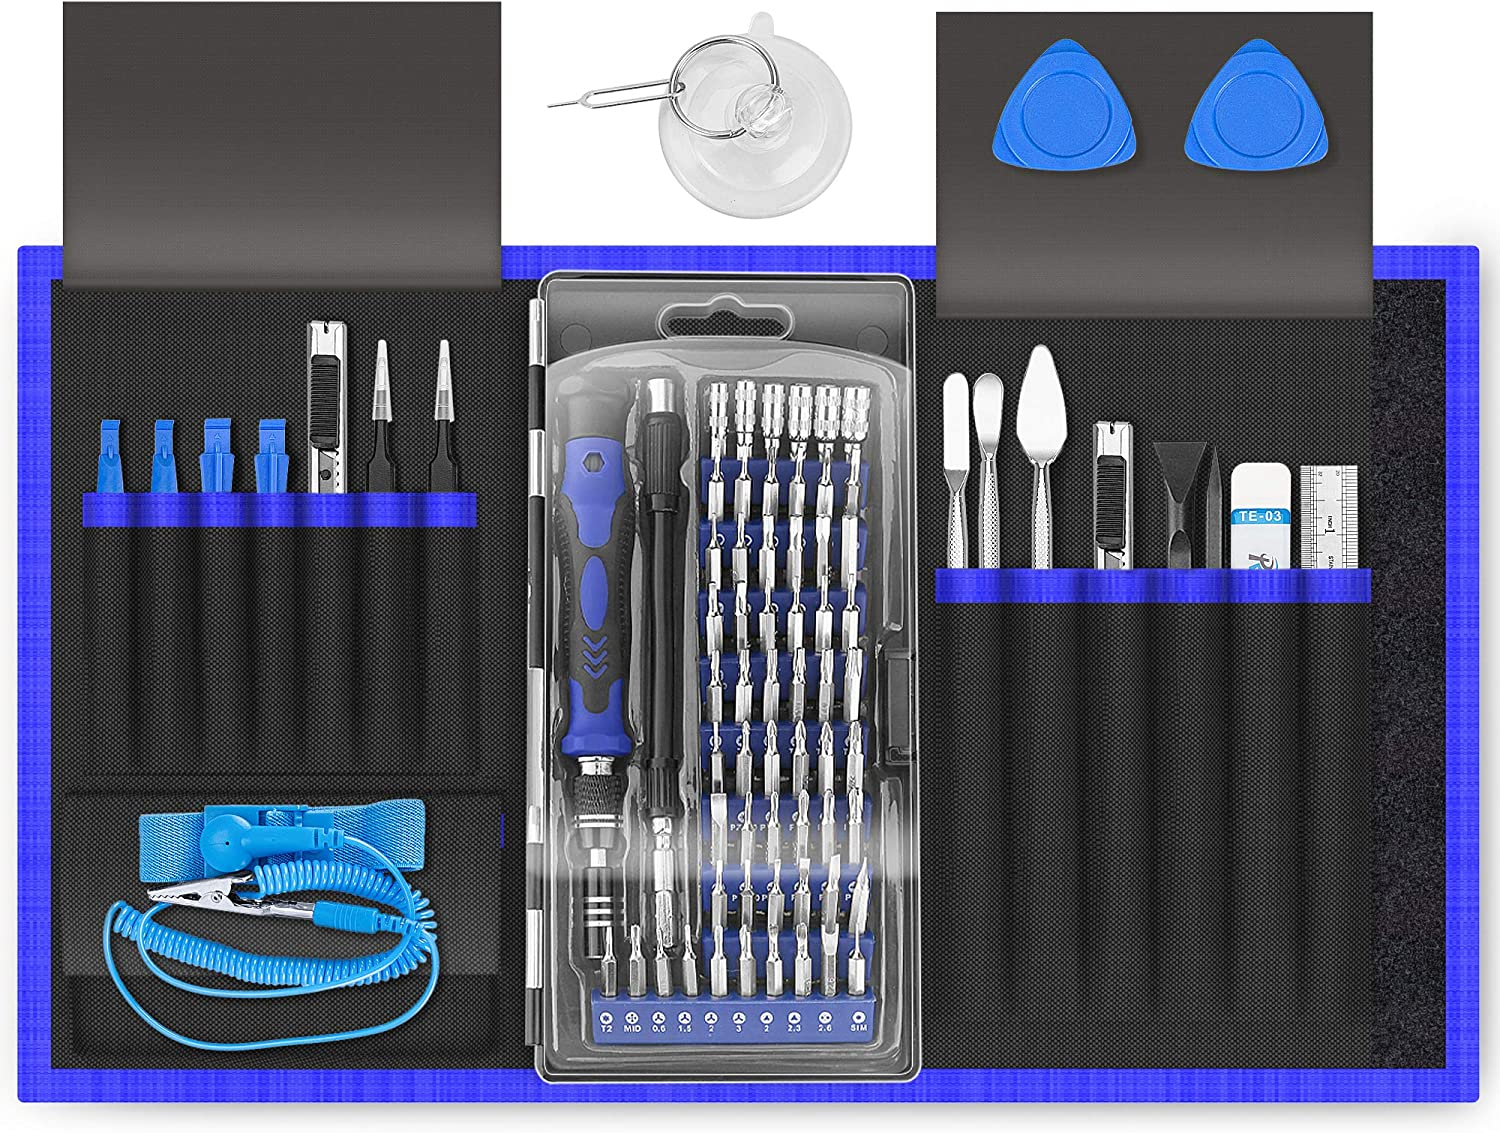 XOOL 80 in 1 Precision Set with Magnetic Driver Kit, Professional Electronics Repair Tool Kit with Portable Oxford Bag for Repair Cell Phone, iPhone, iPad, Watch, Tablet, PC, MacBook: Home Improvement